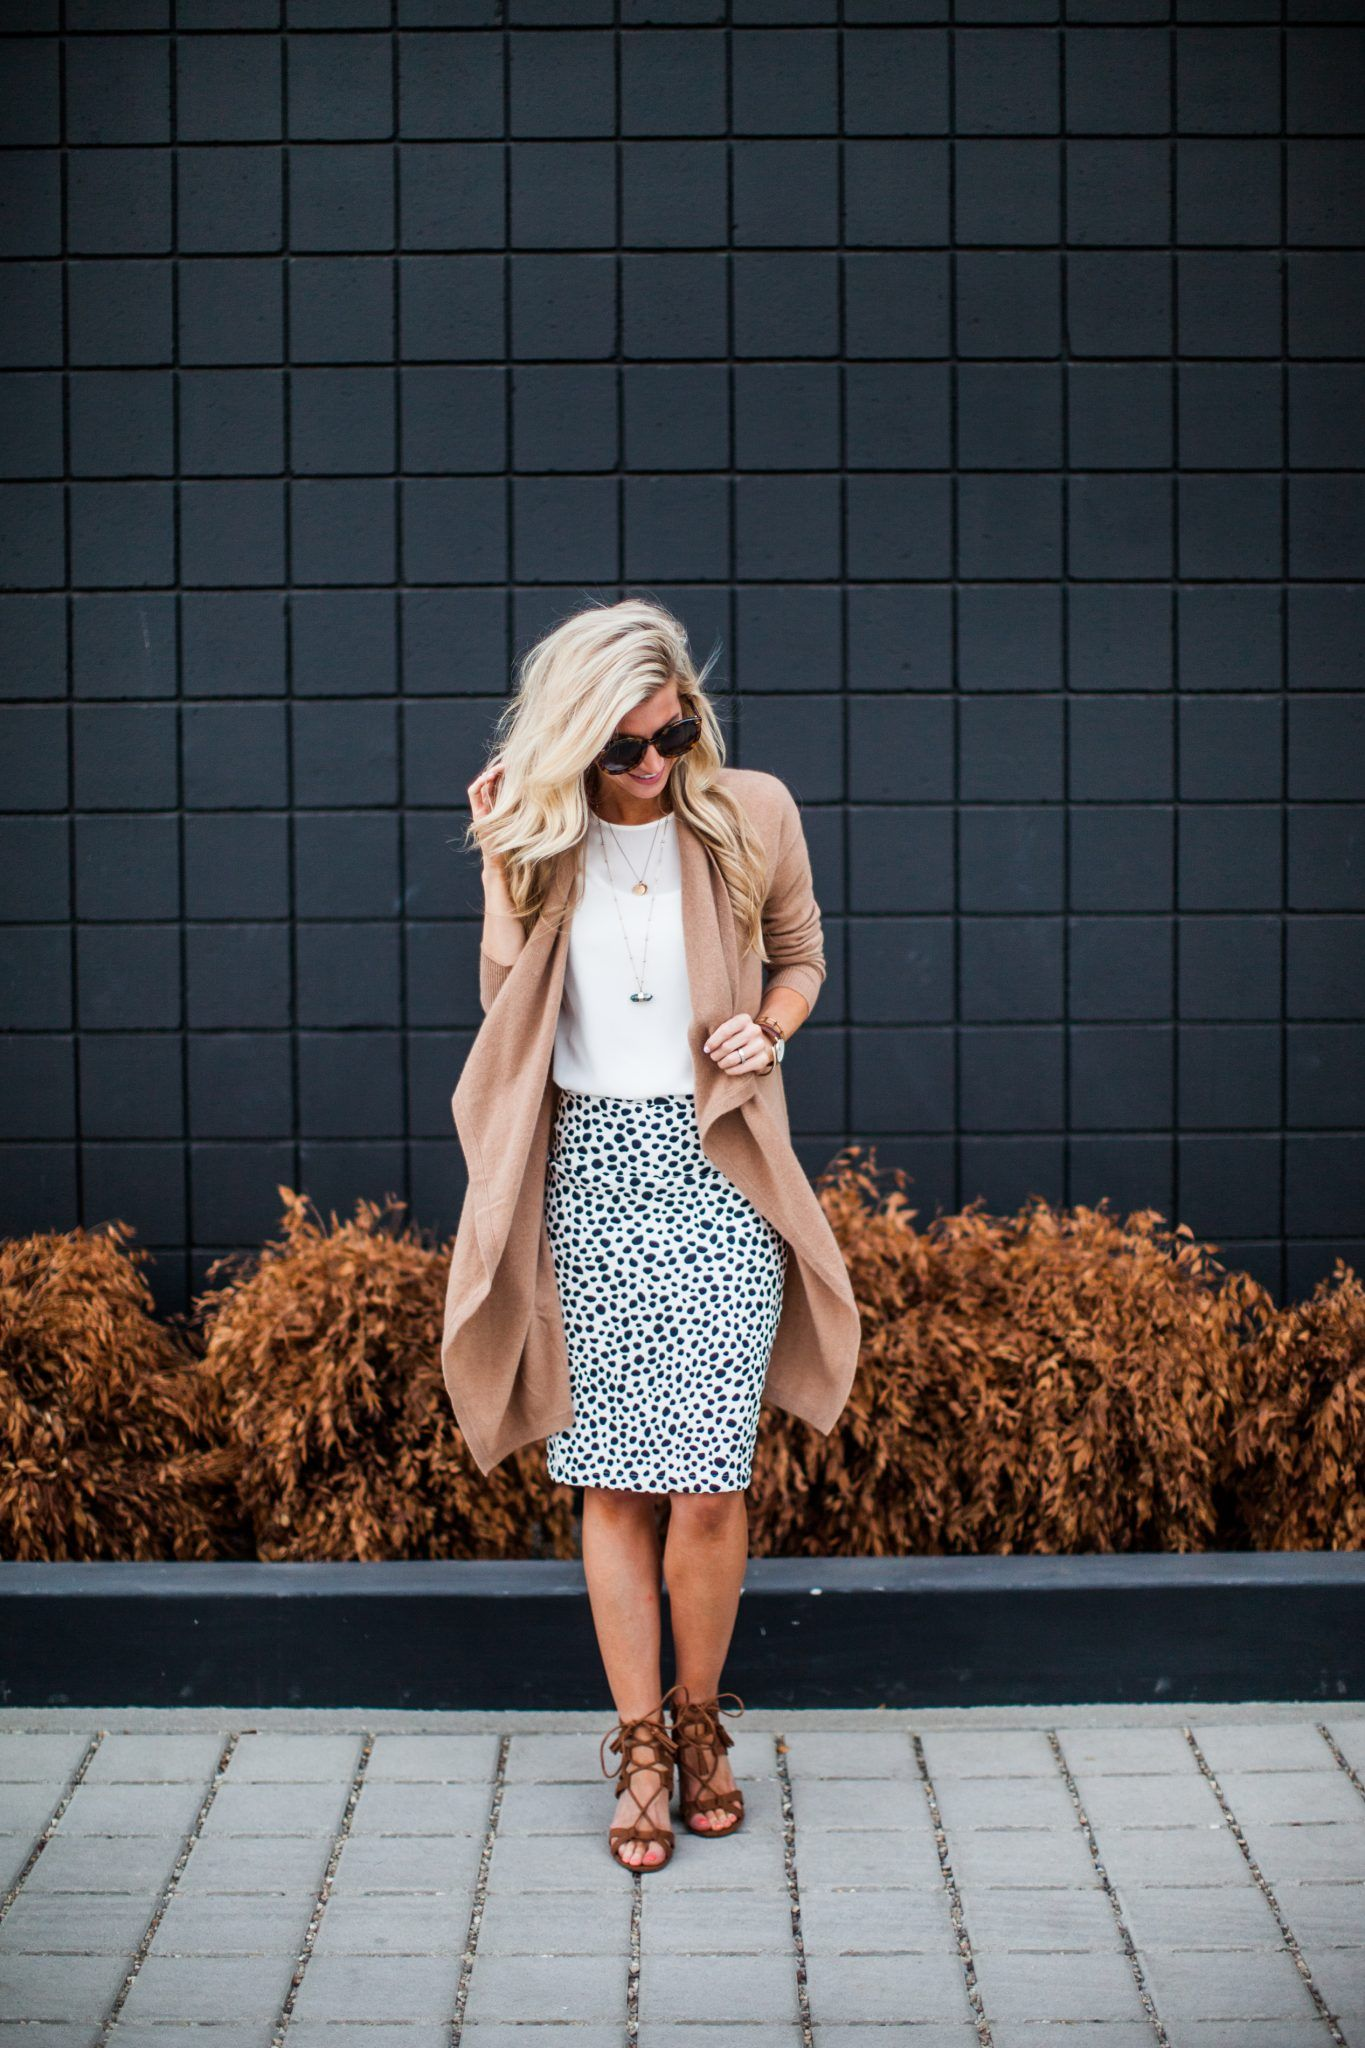 Summer to fall look in a printed pencil skirt, cognac sweater, and strappy shoes || Elle Apparel Blog